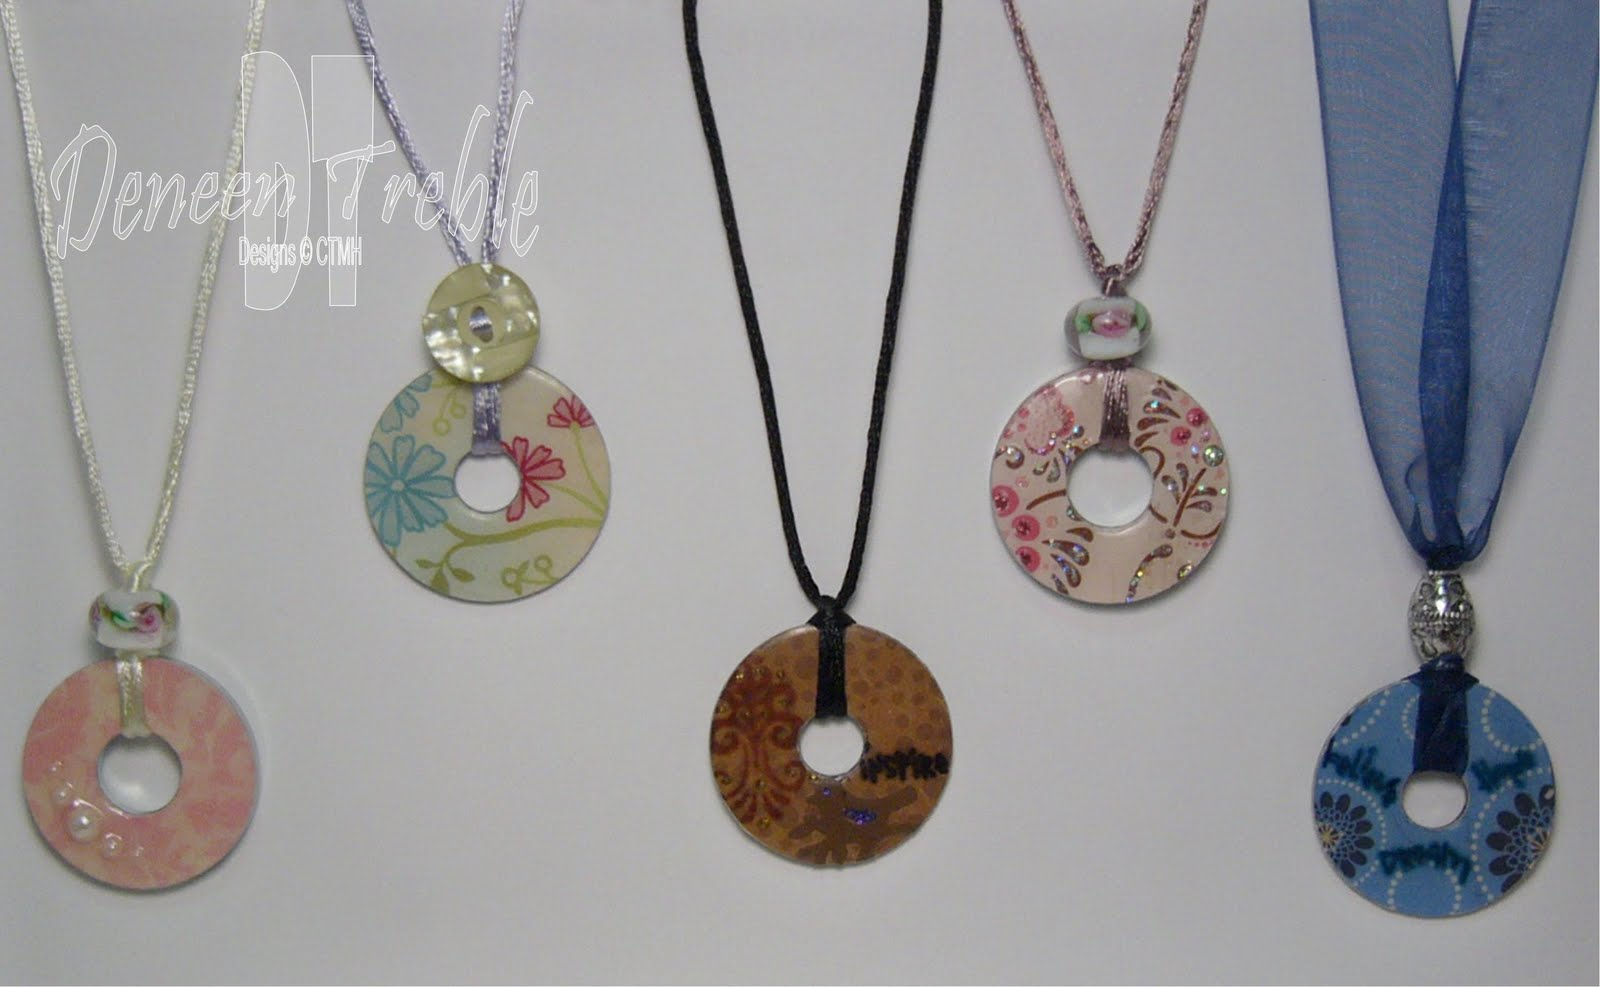 A path of paper washer pendant necklaces keychains washer pendant necklaces keychains aloadofball Images